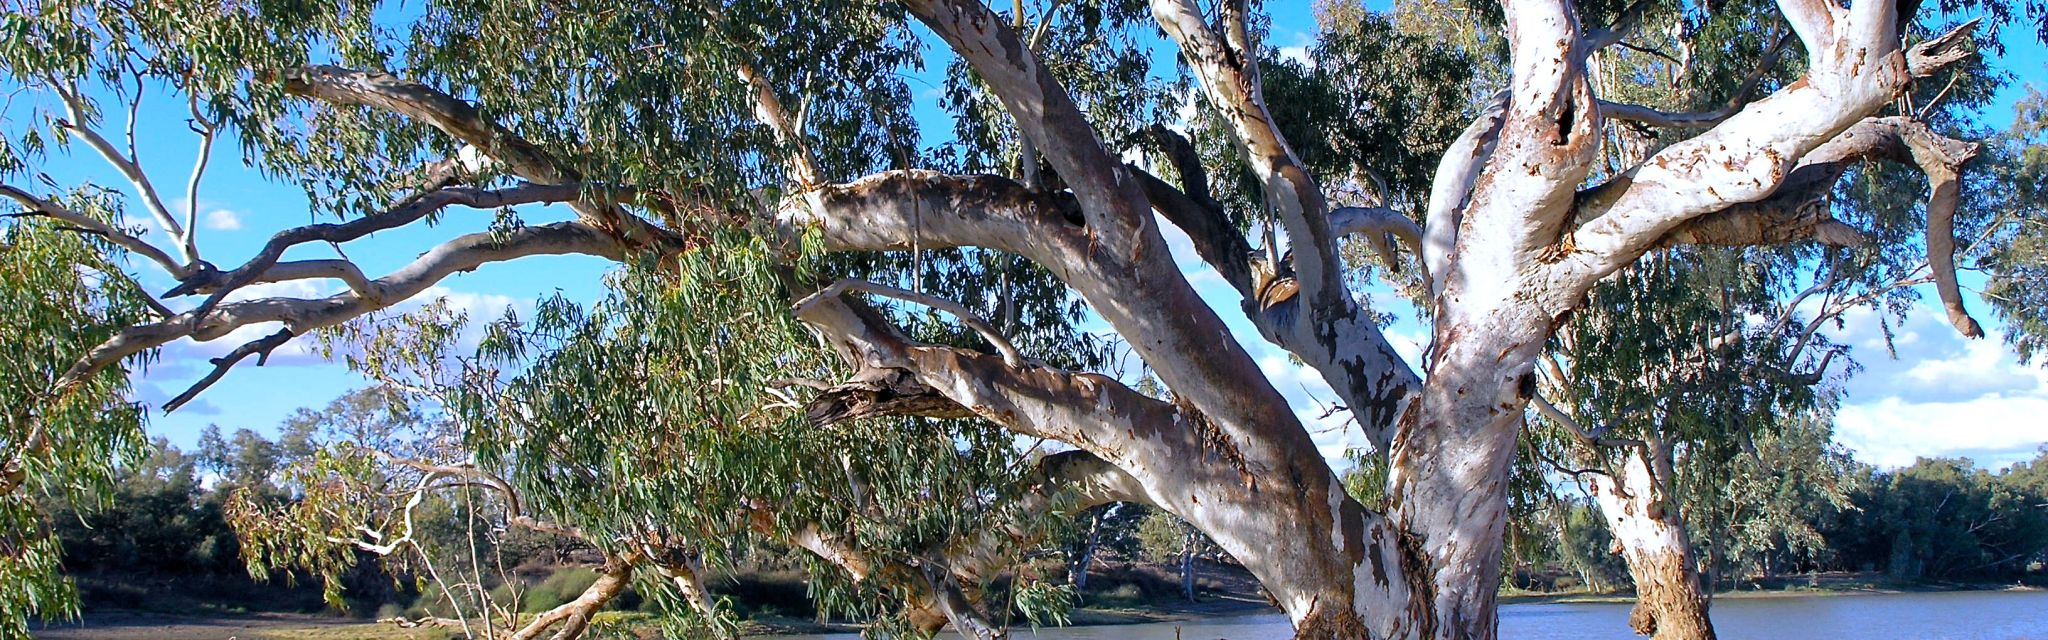 River Red Gum on the banks of Cooper Creek, visited on the Corner Country Outback Tour